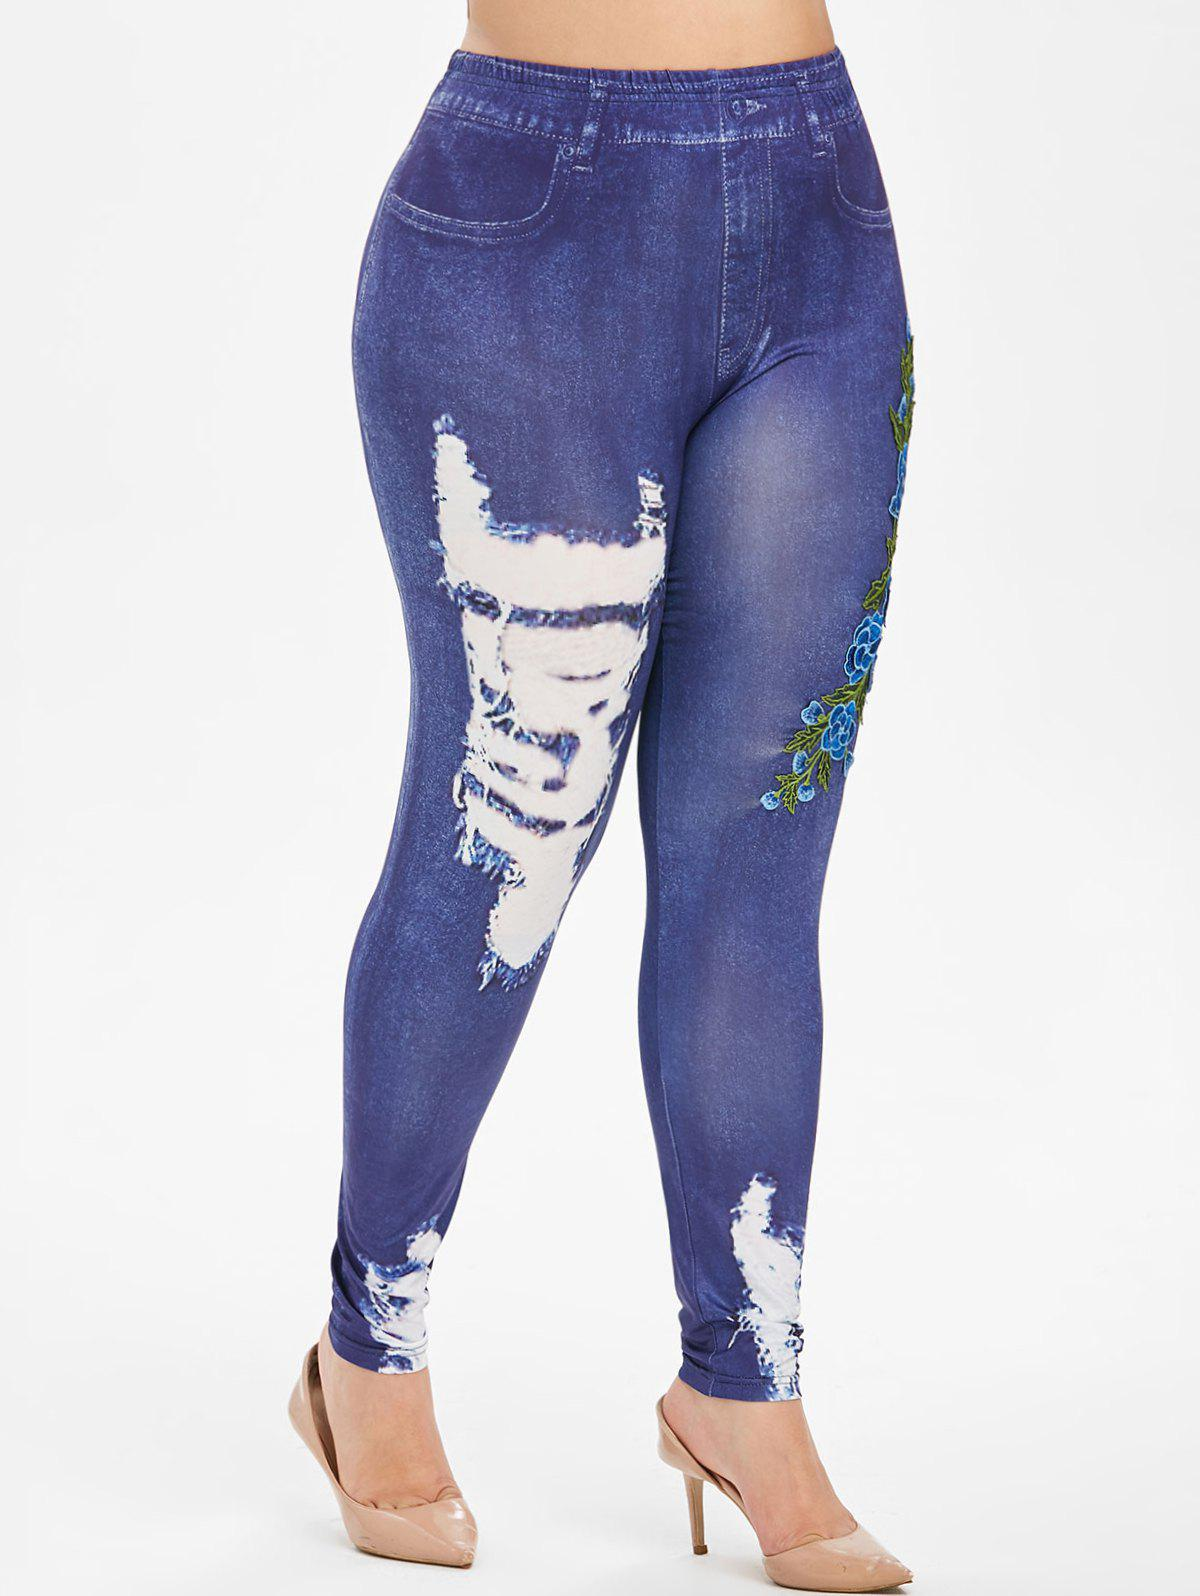 Pull On 3D Floral Embroidered Applique High Waisted Plus Size Jeggings - BLUE 5X